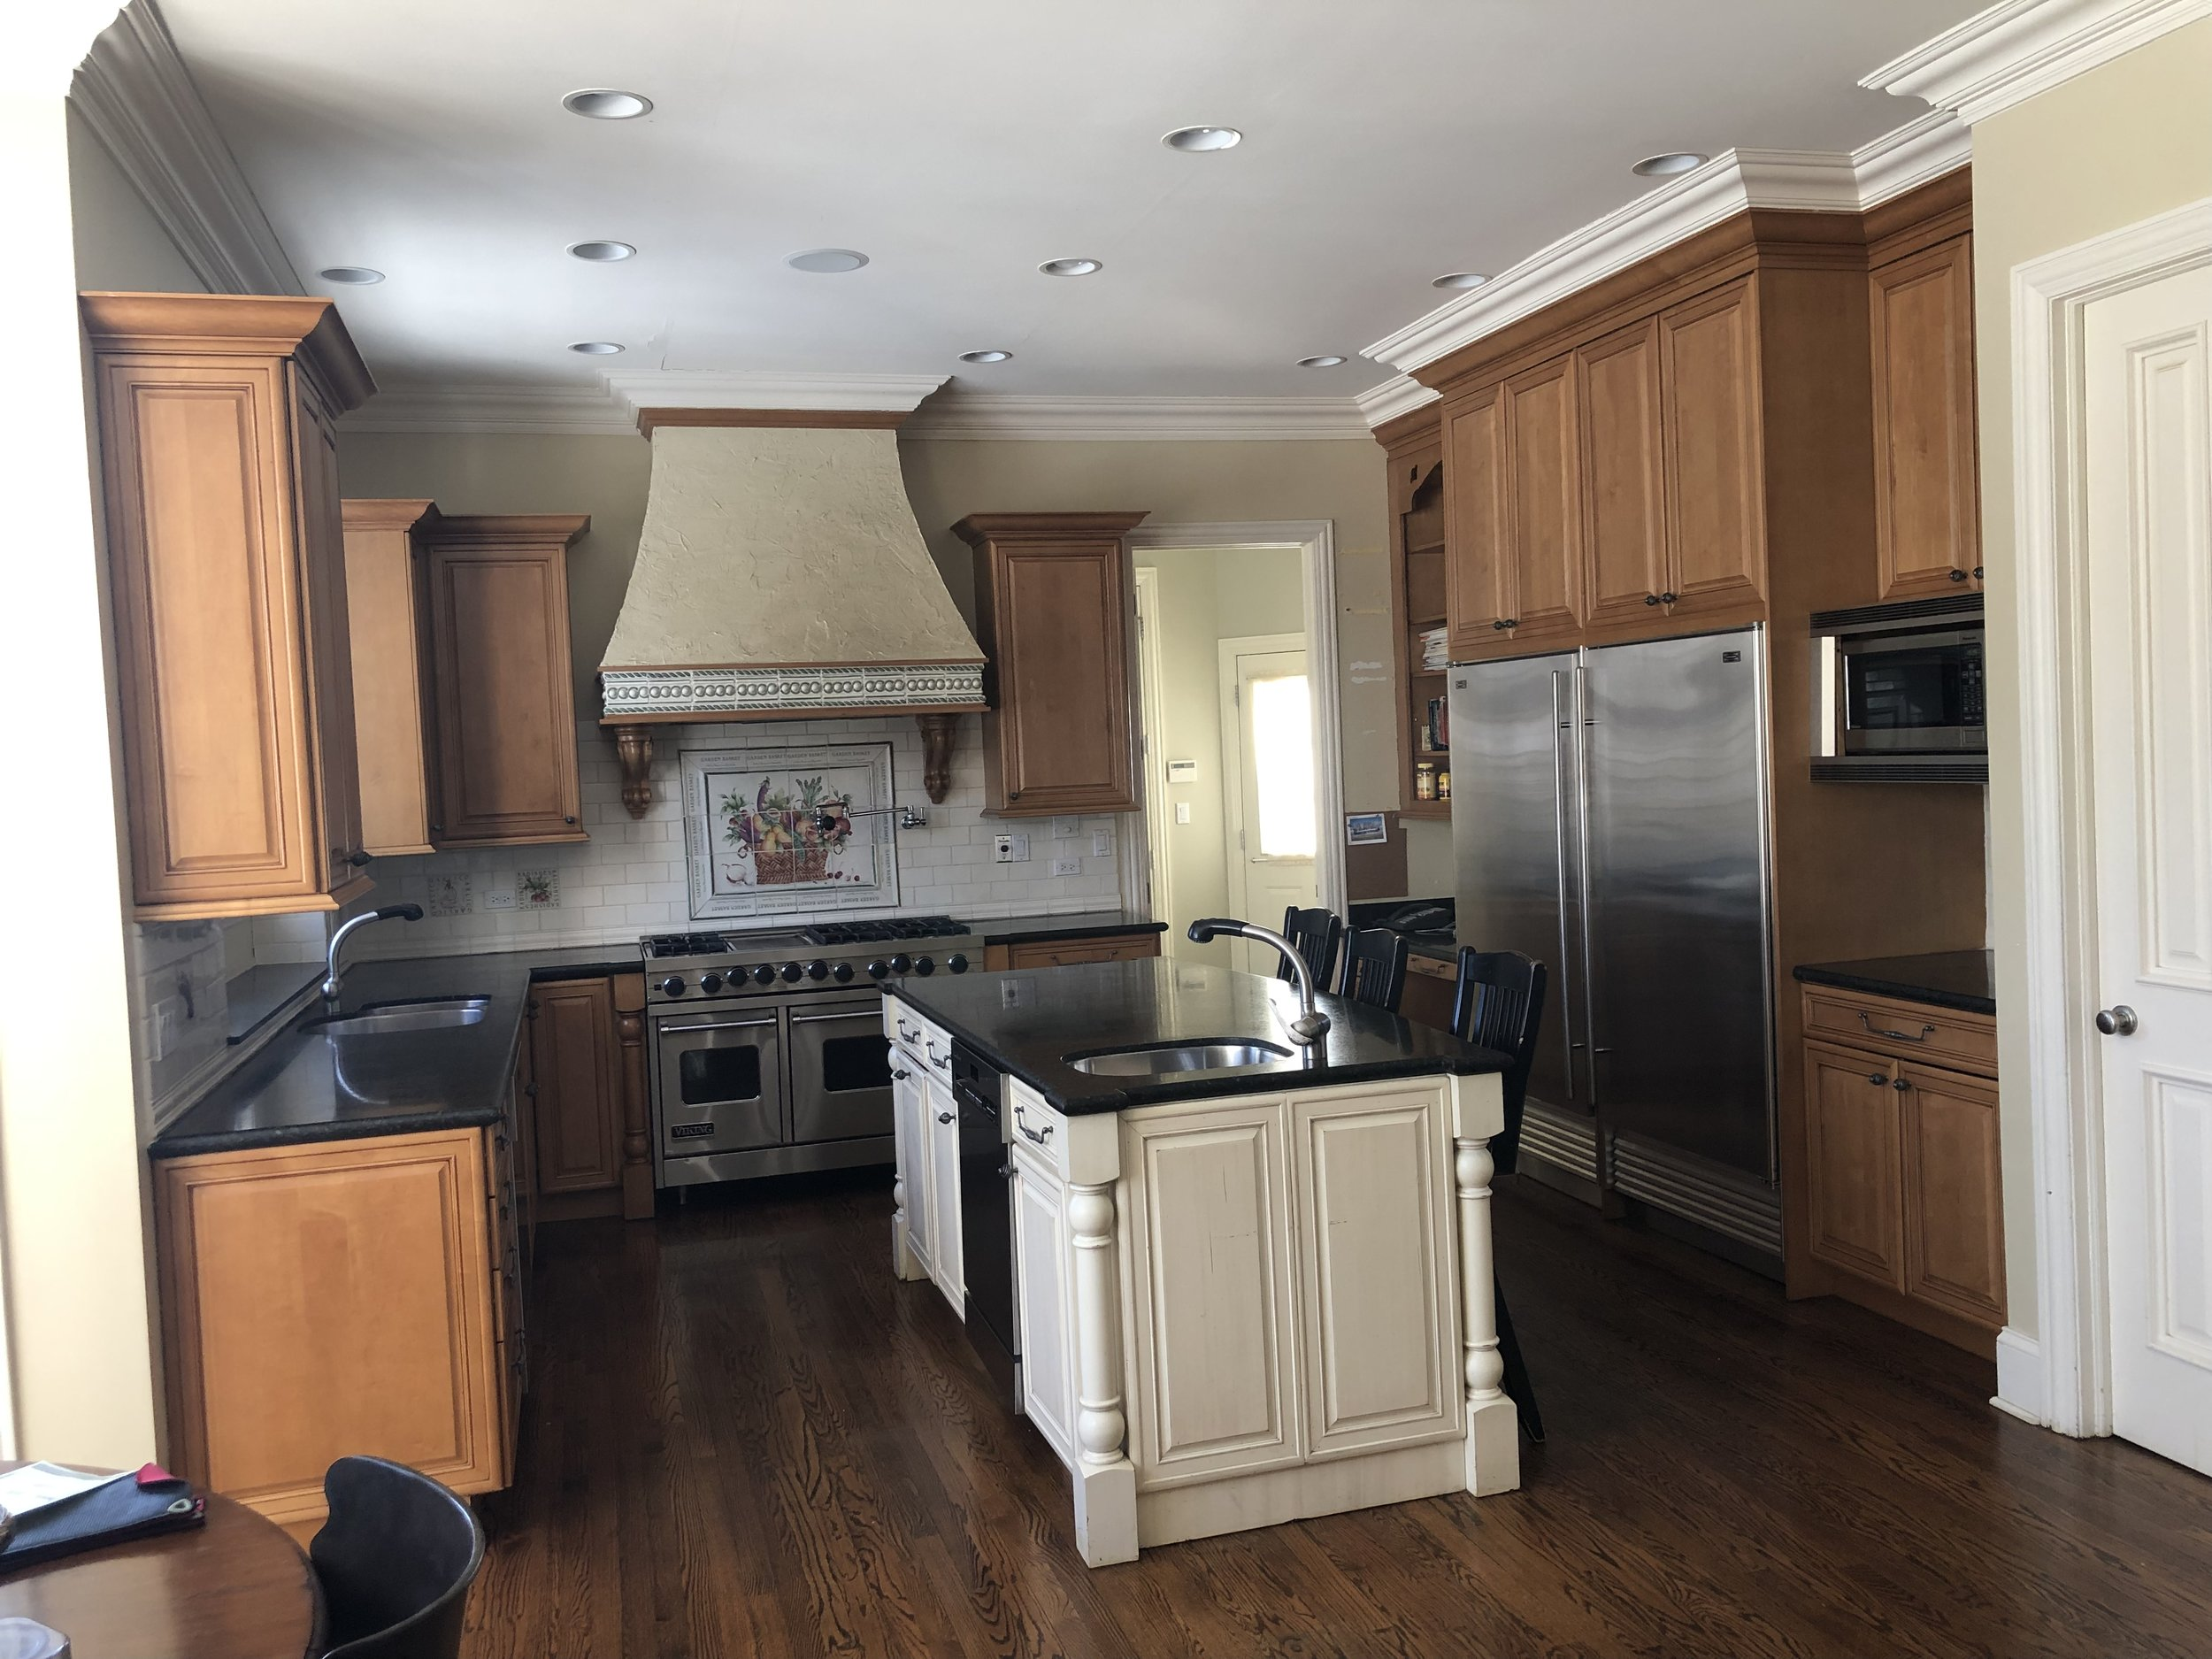 Gorg Complete Wood Brookhaven Kitchen Cabinets Granite Sub Zero Stainless  Steel Appliances Butlers Pantry Island — Little Green Kitchens